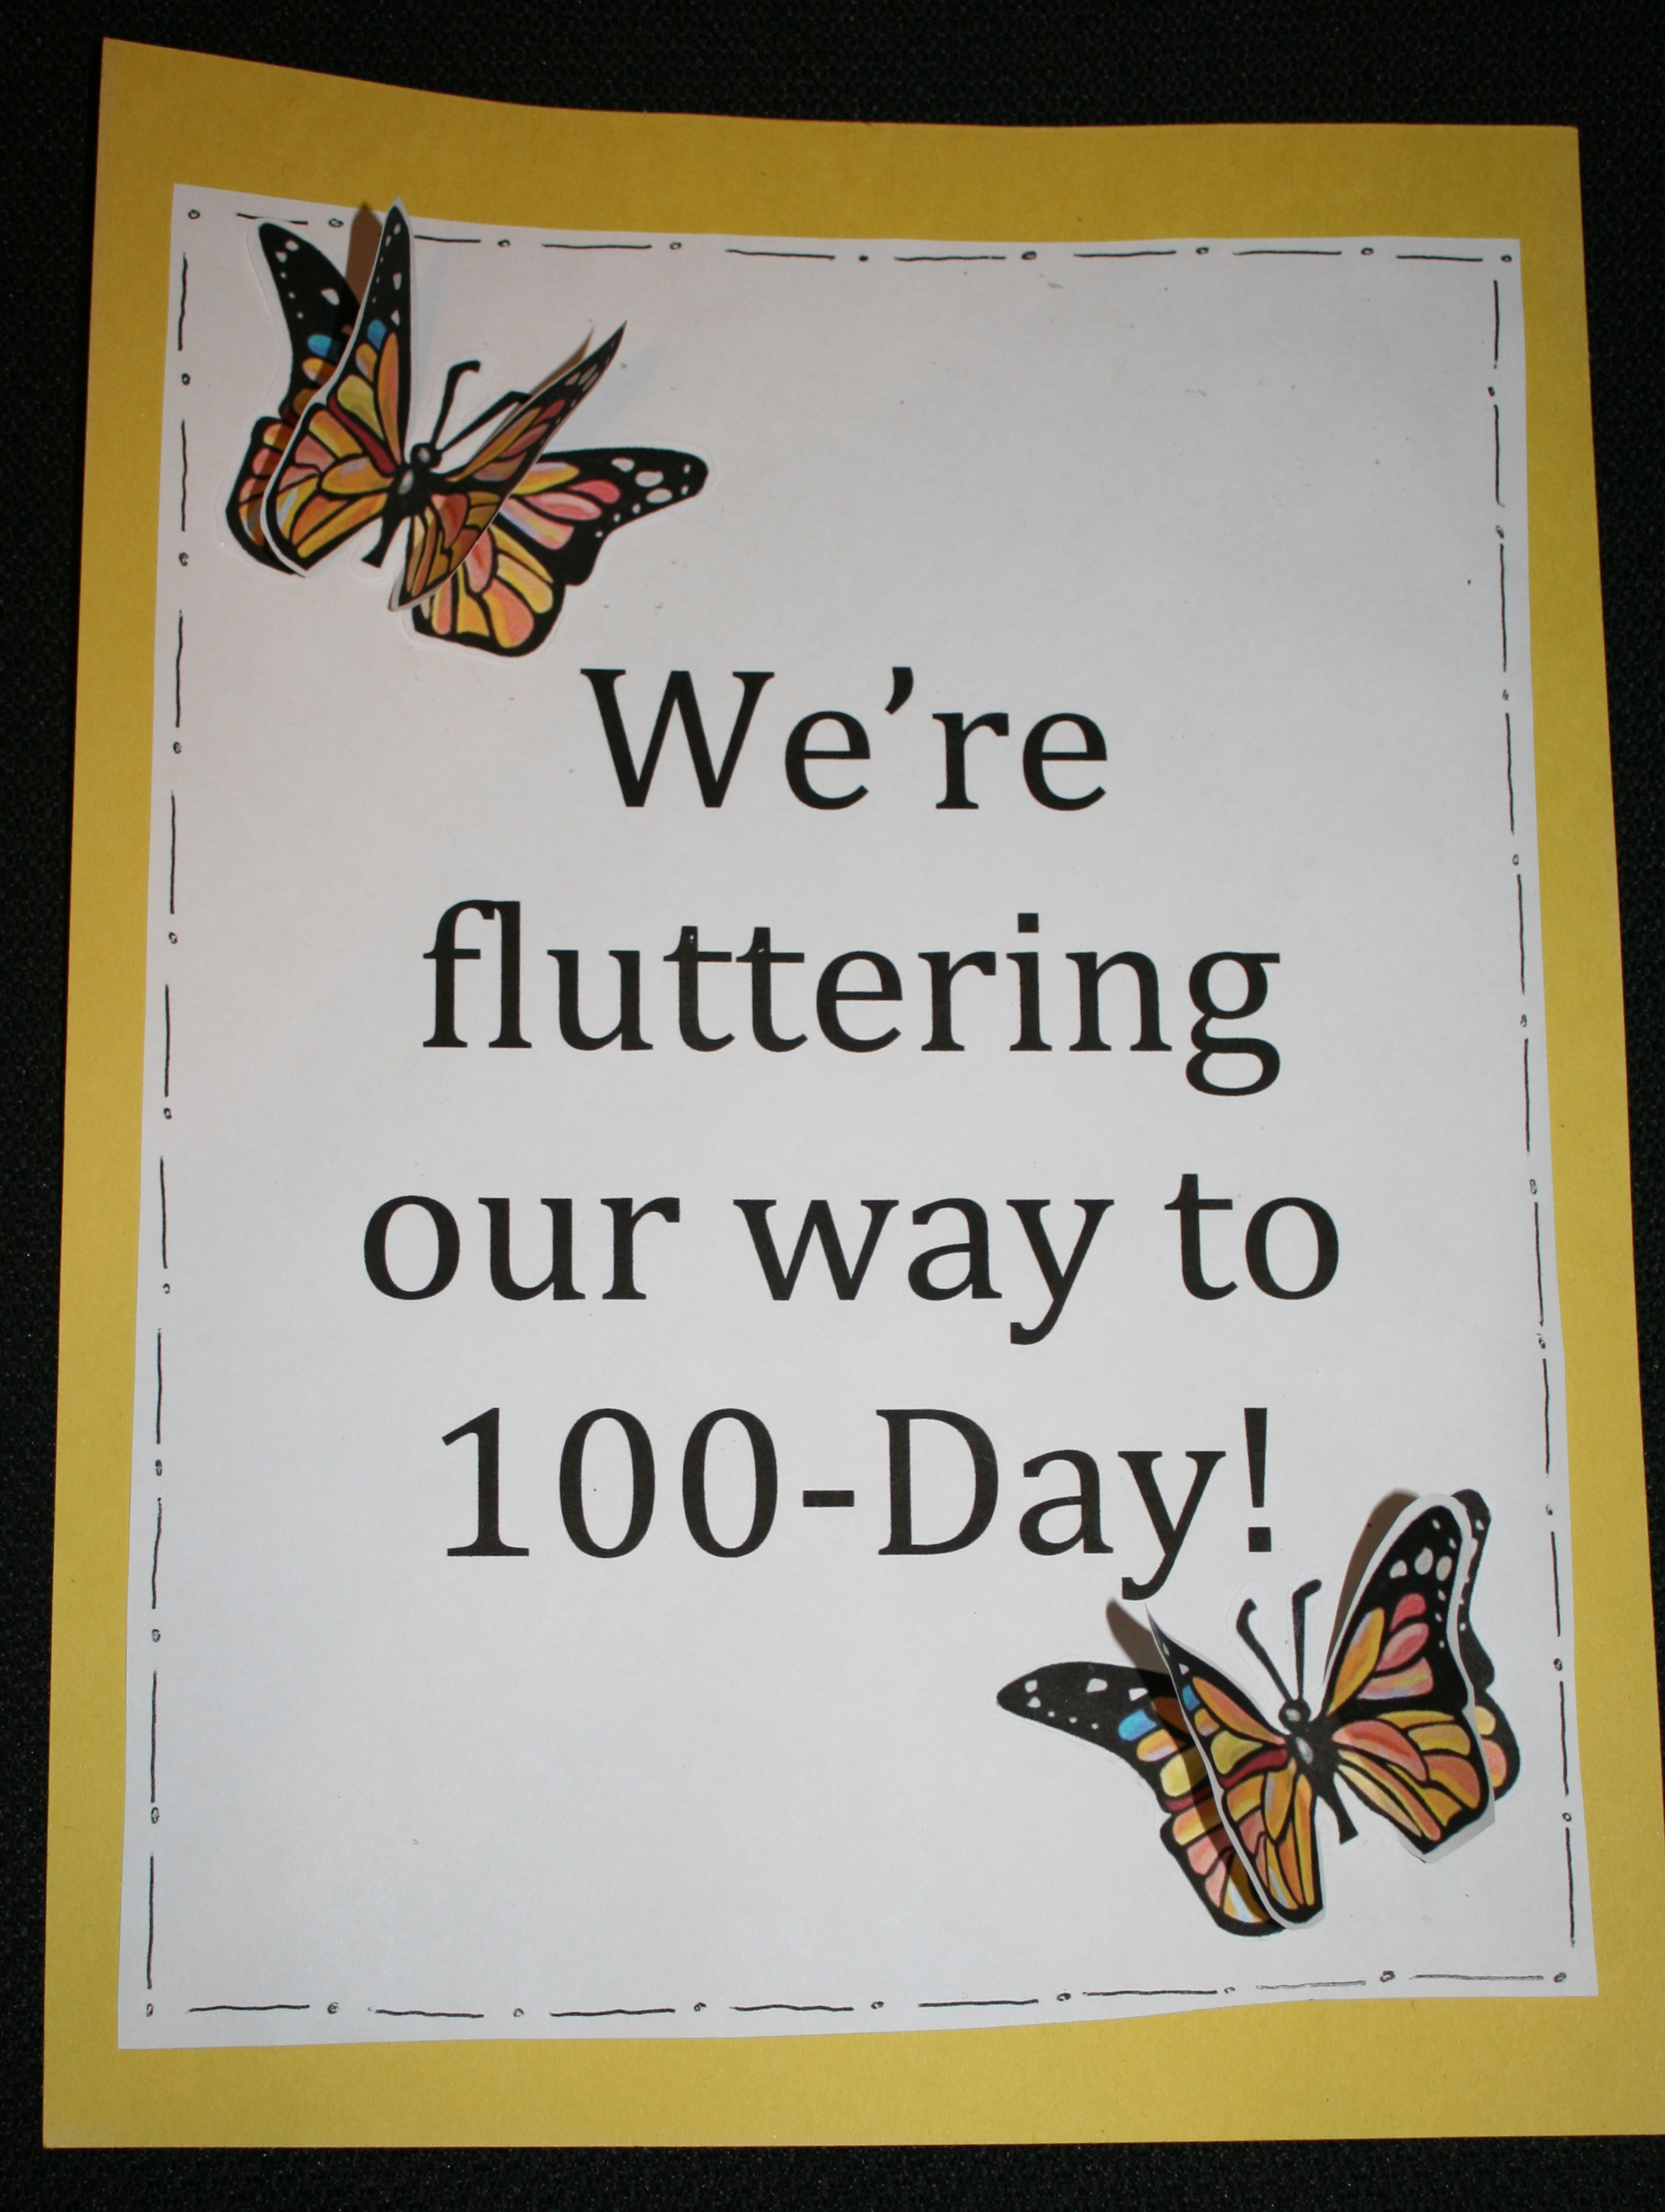 back to school ideas, ideas for the first day of school, butterfly bulletin board, ideas for counting to 100 day